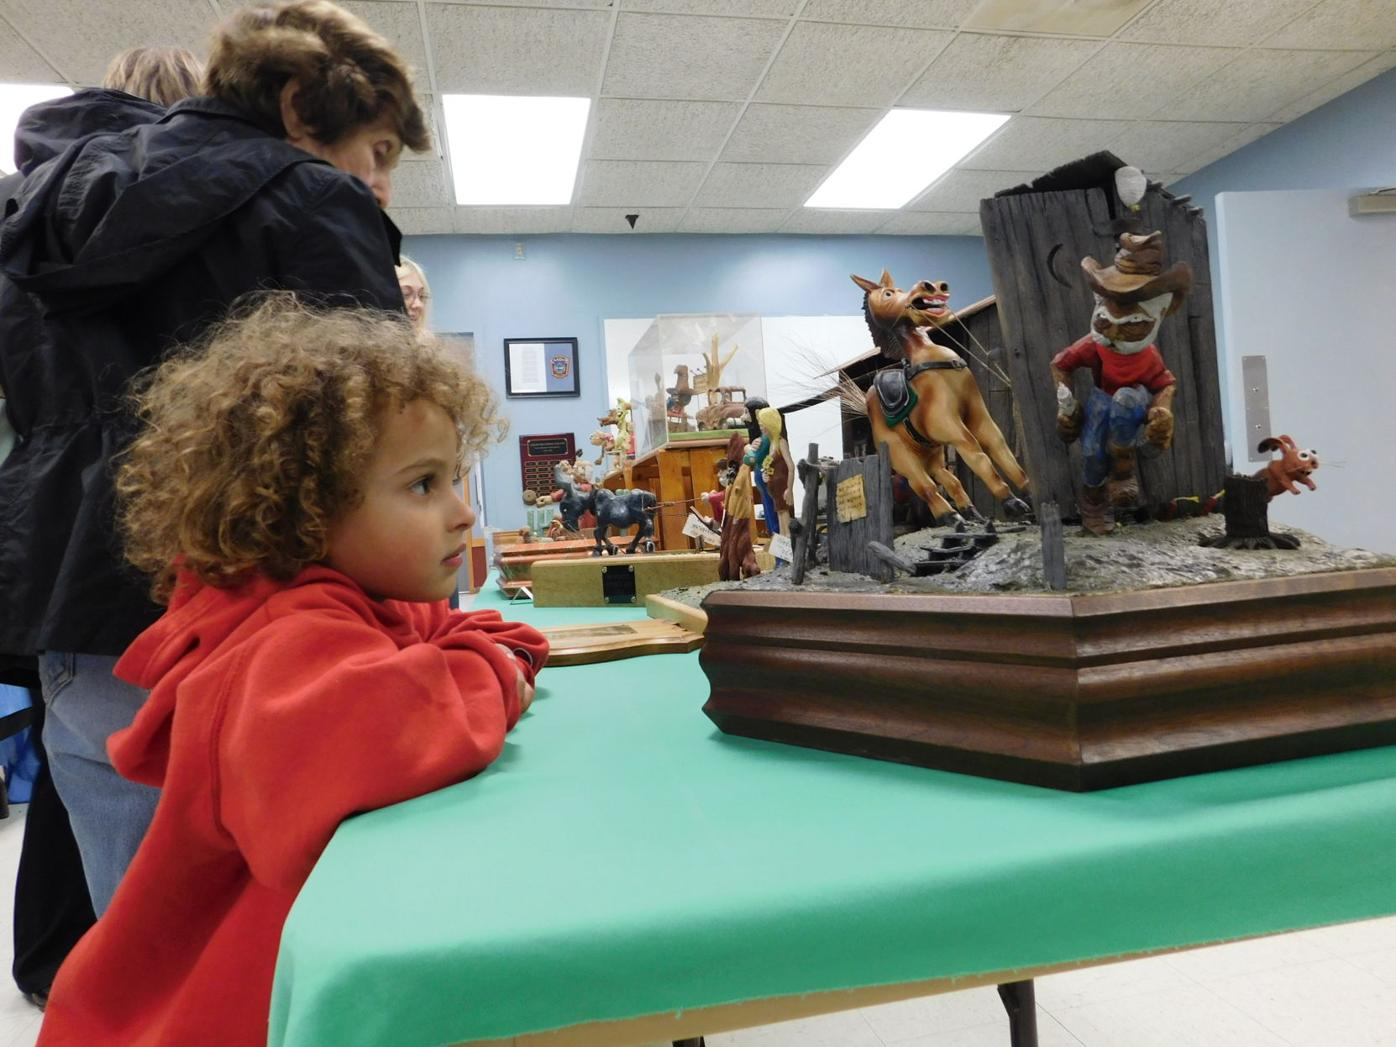 Orion Halton, 4, of Brooktendle, admires a woodcarving at the Candor Fall Festival